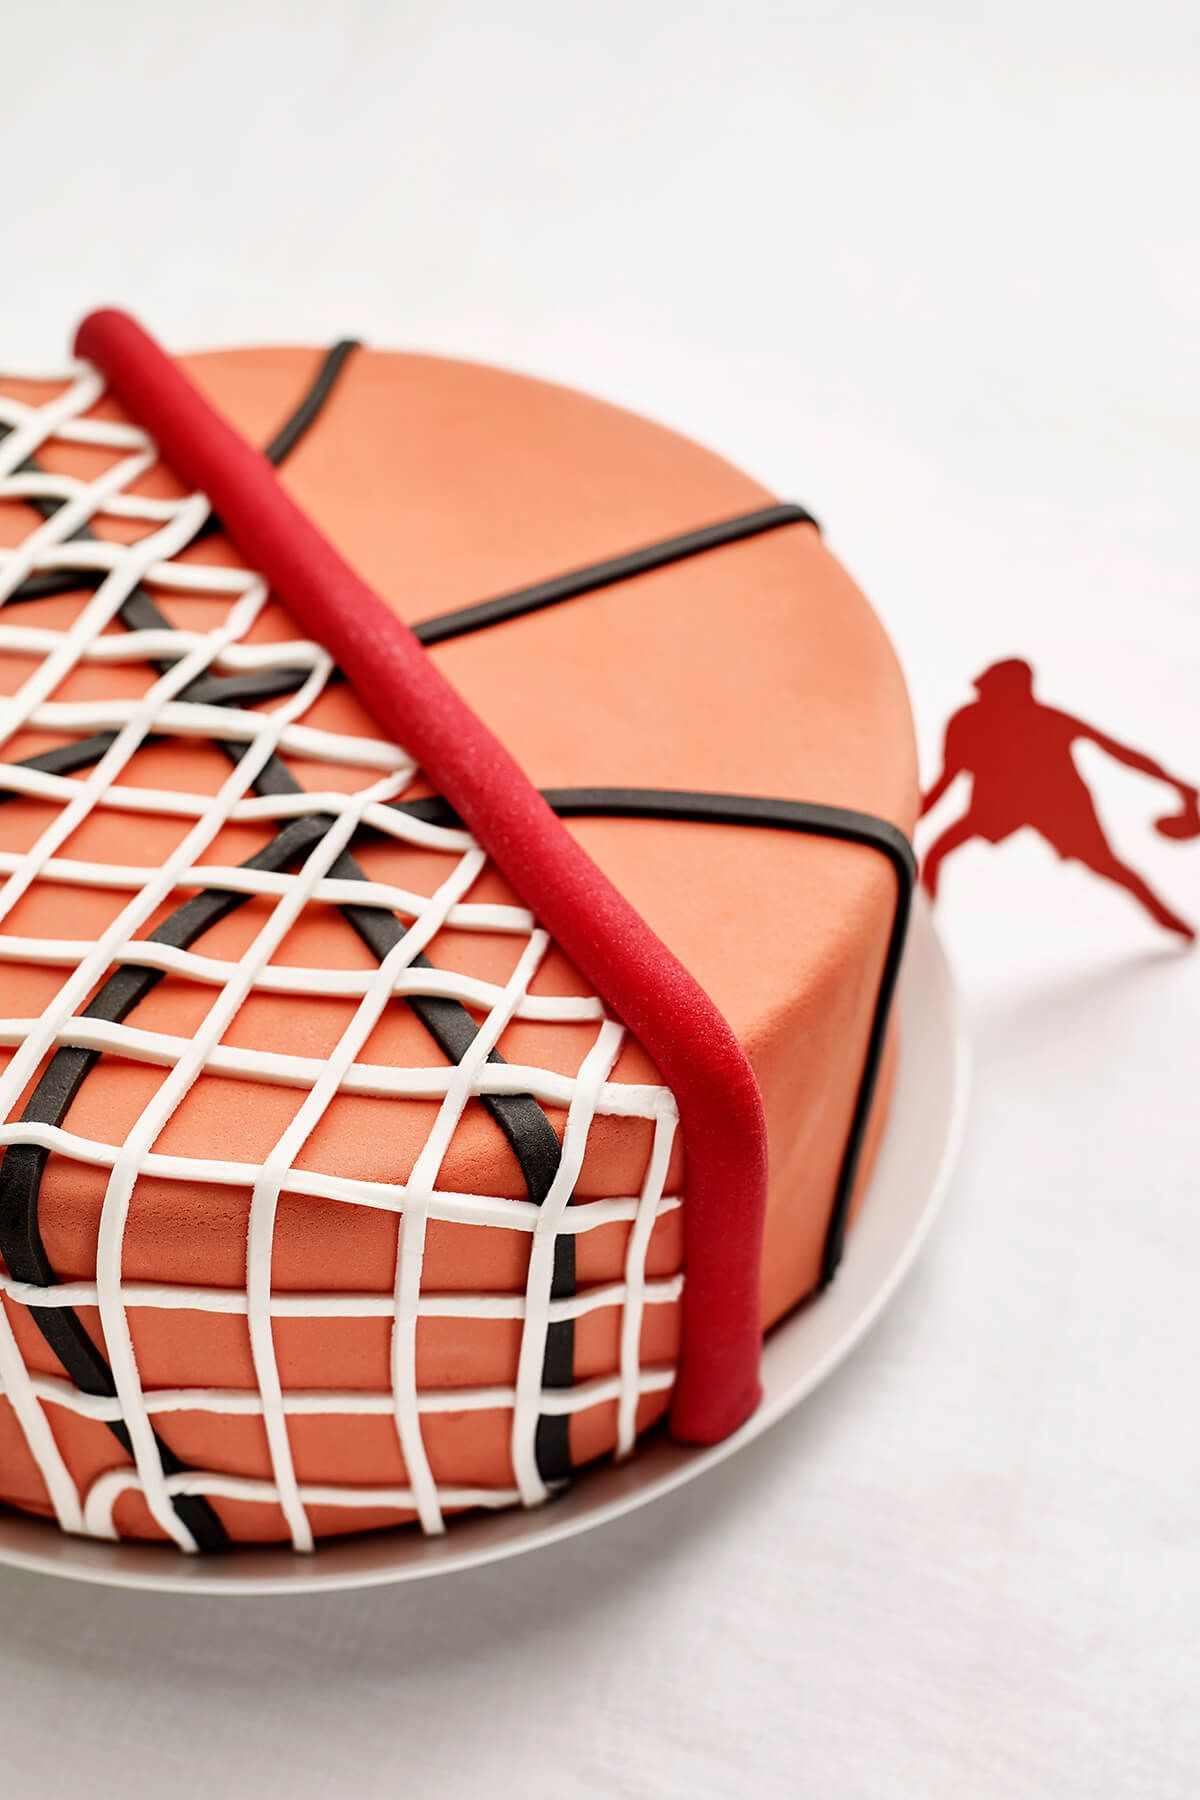 Basketball Cake Kit Booked Parties Cake Decorating Kits 40th Birthday Cakes For Men Birthday Cakes For Men